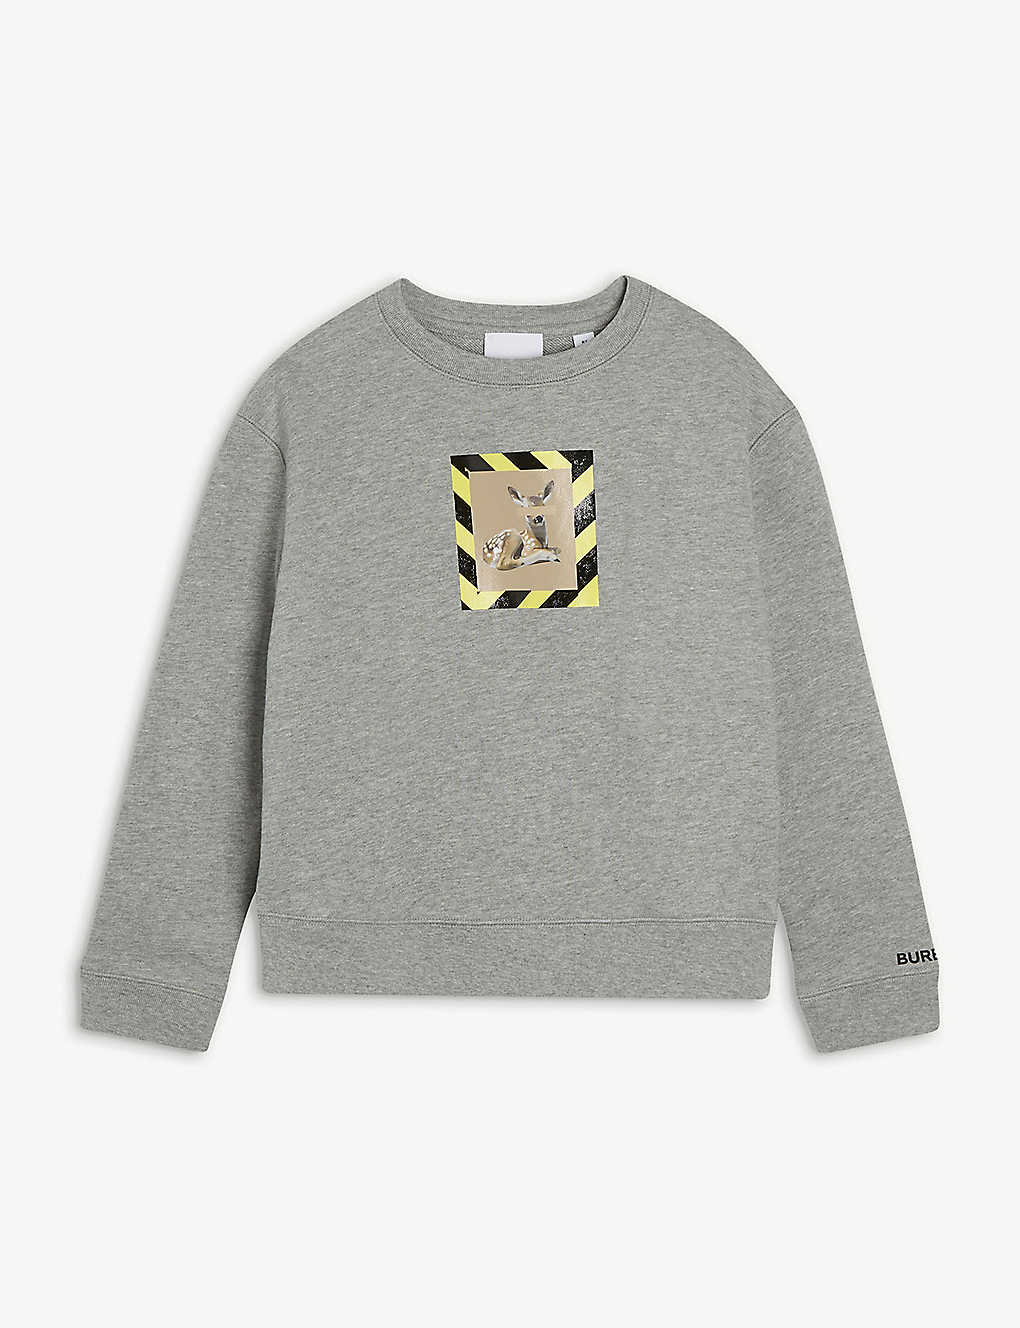 BURBERRY: Deer-motif cotton-jersey sweatshirt 6-14 years